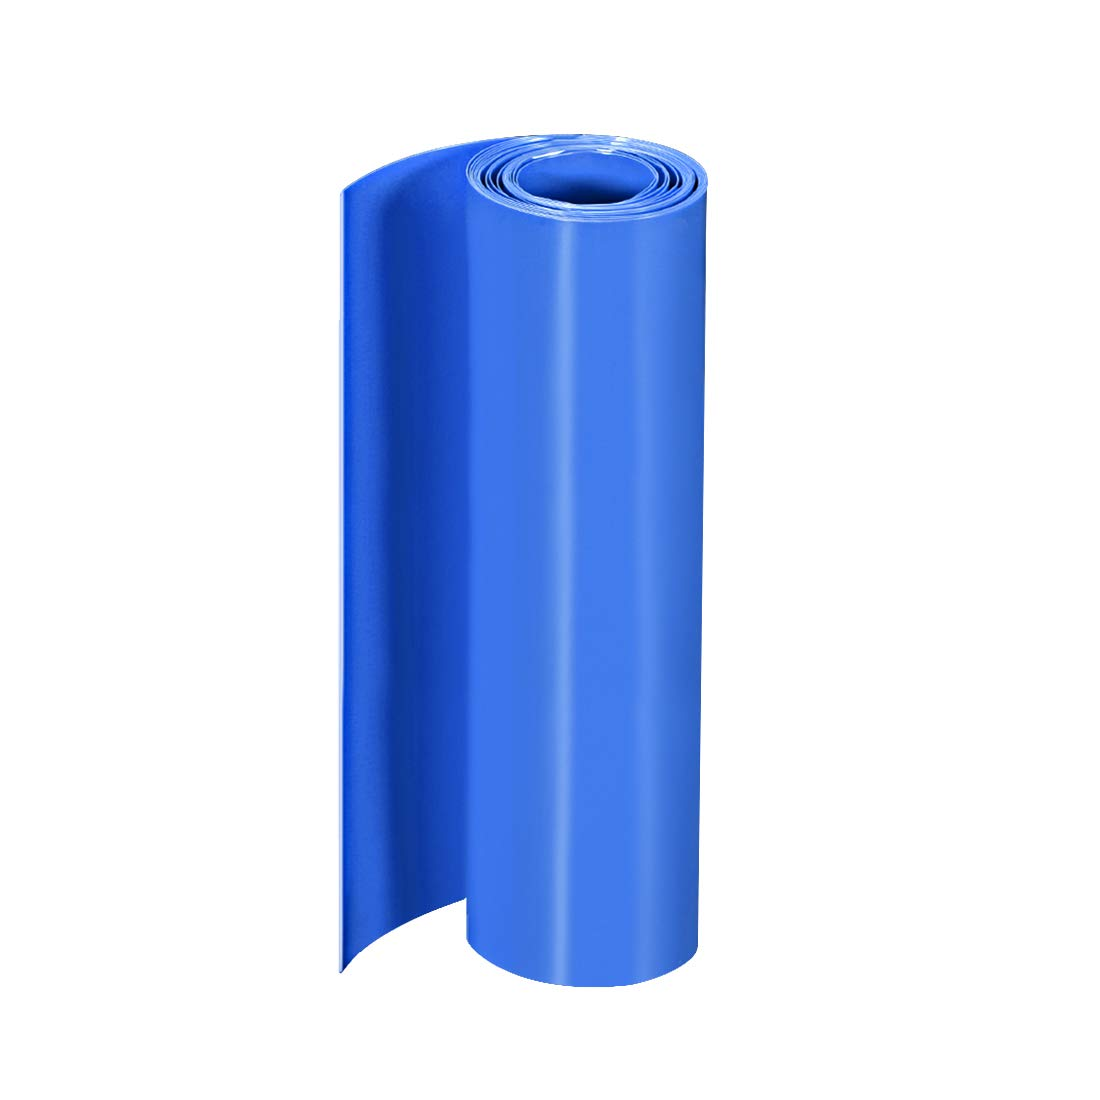 uxcell PVC Heat Shrink Tube 160mm Flat Width Wrap for Dual Layer 18650 2 Meter Blue